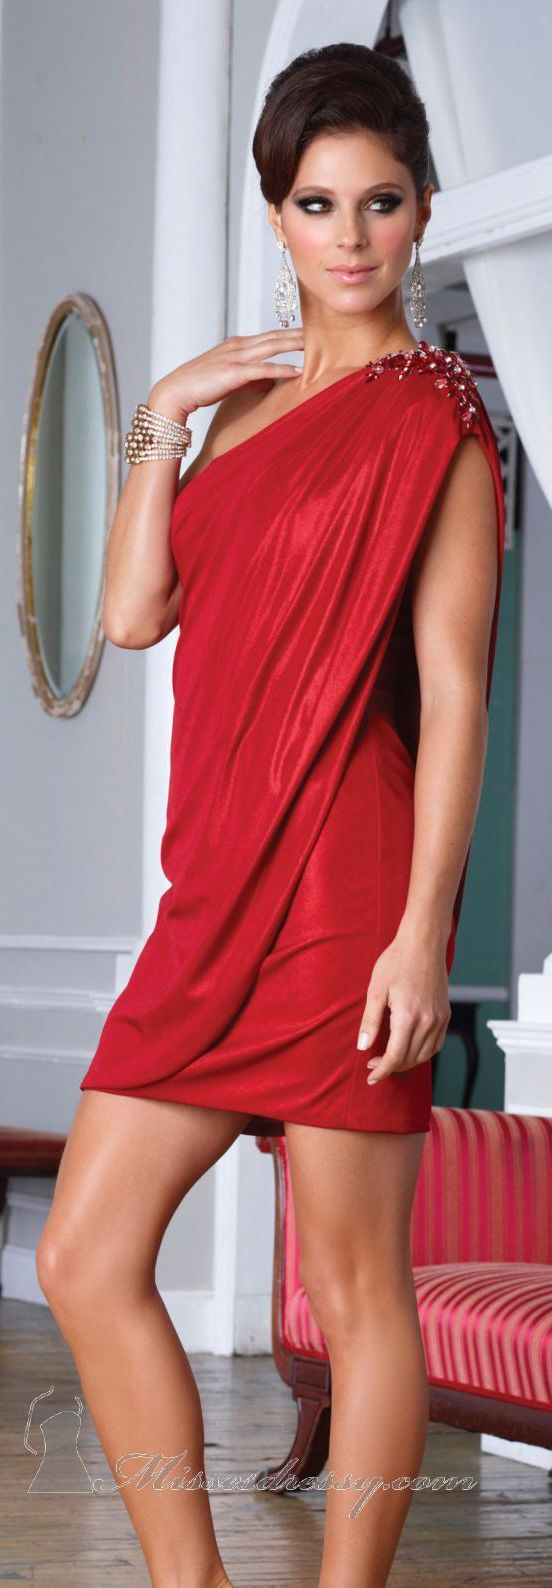 Because every woman needs a Sexy Red Dress, this one just happens to be classy too :)